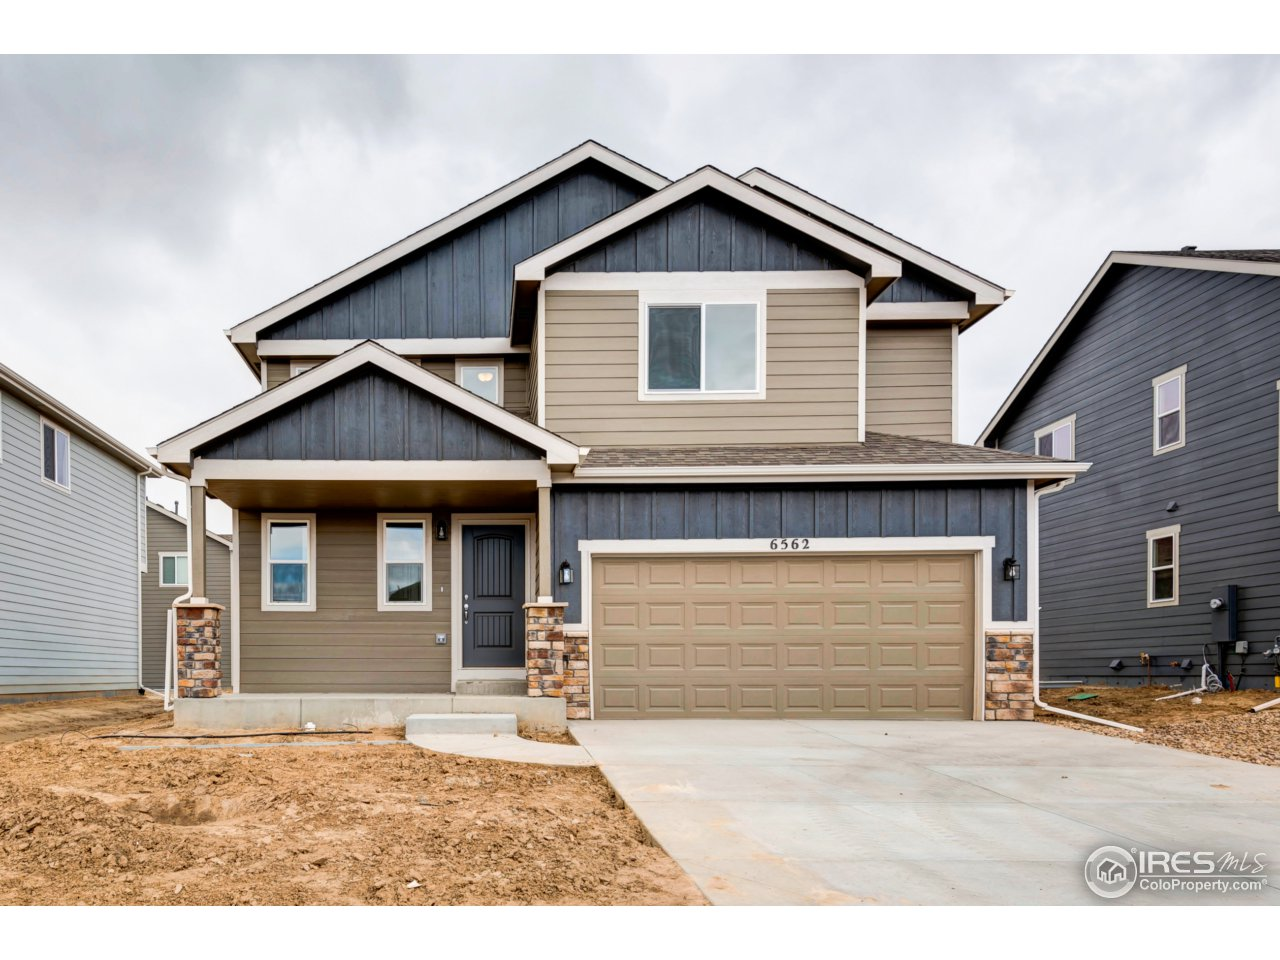 5599 Clarence Dr, Windsor, CO 80550